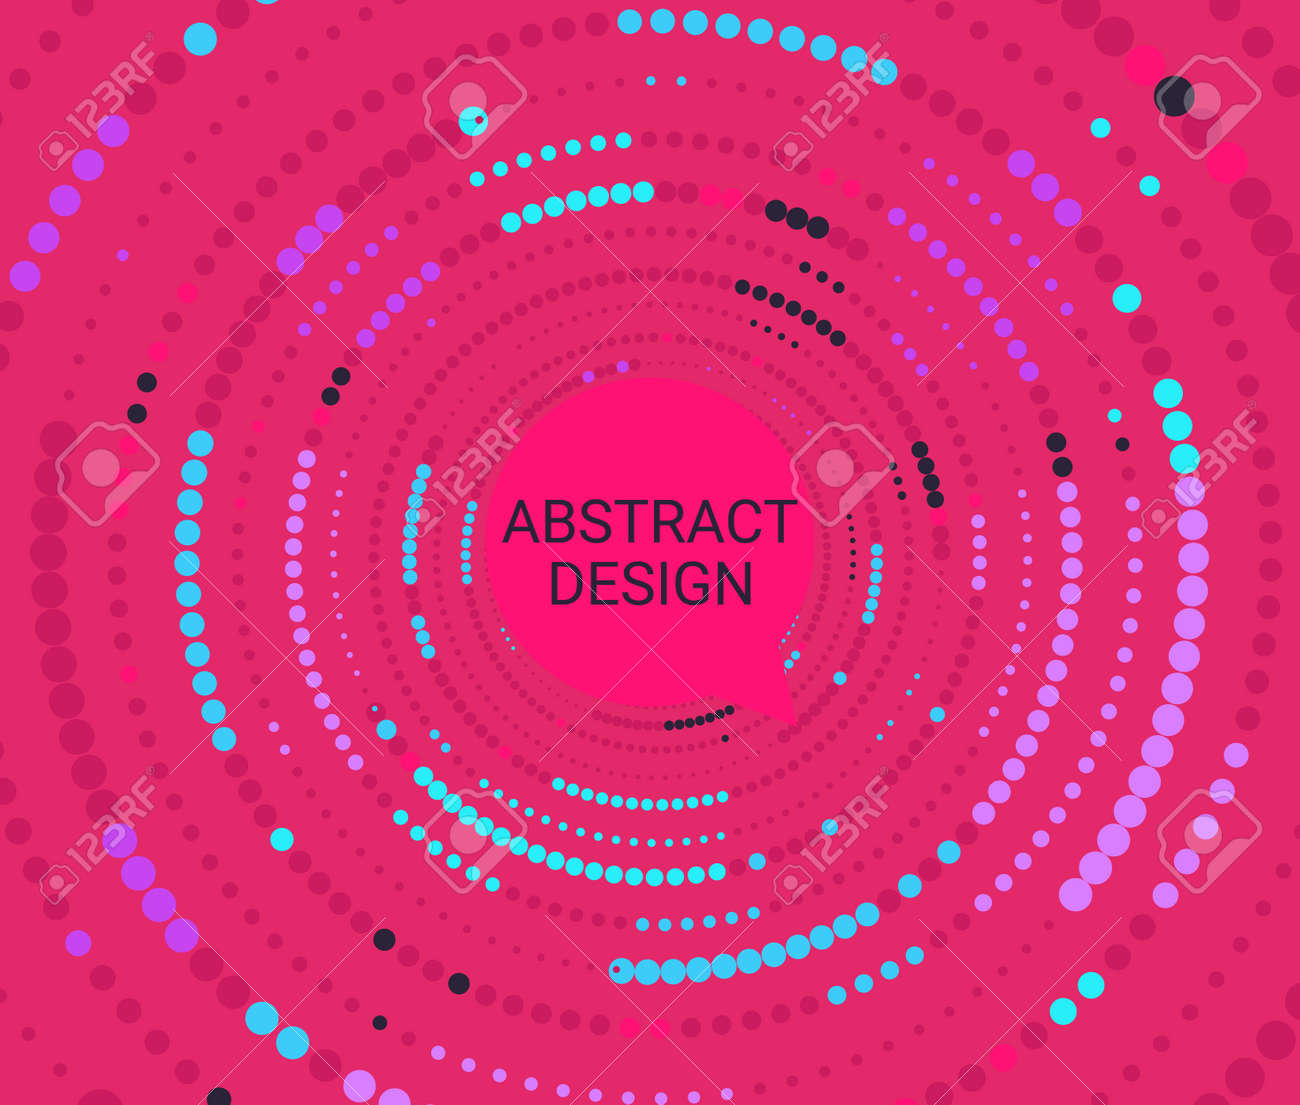 Abstract colorful dotted circles. - 171158480